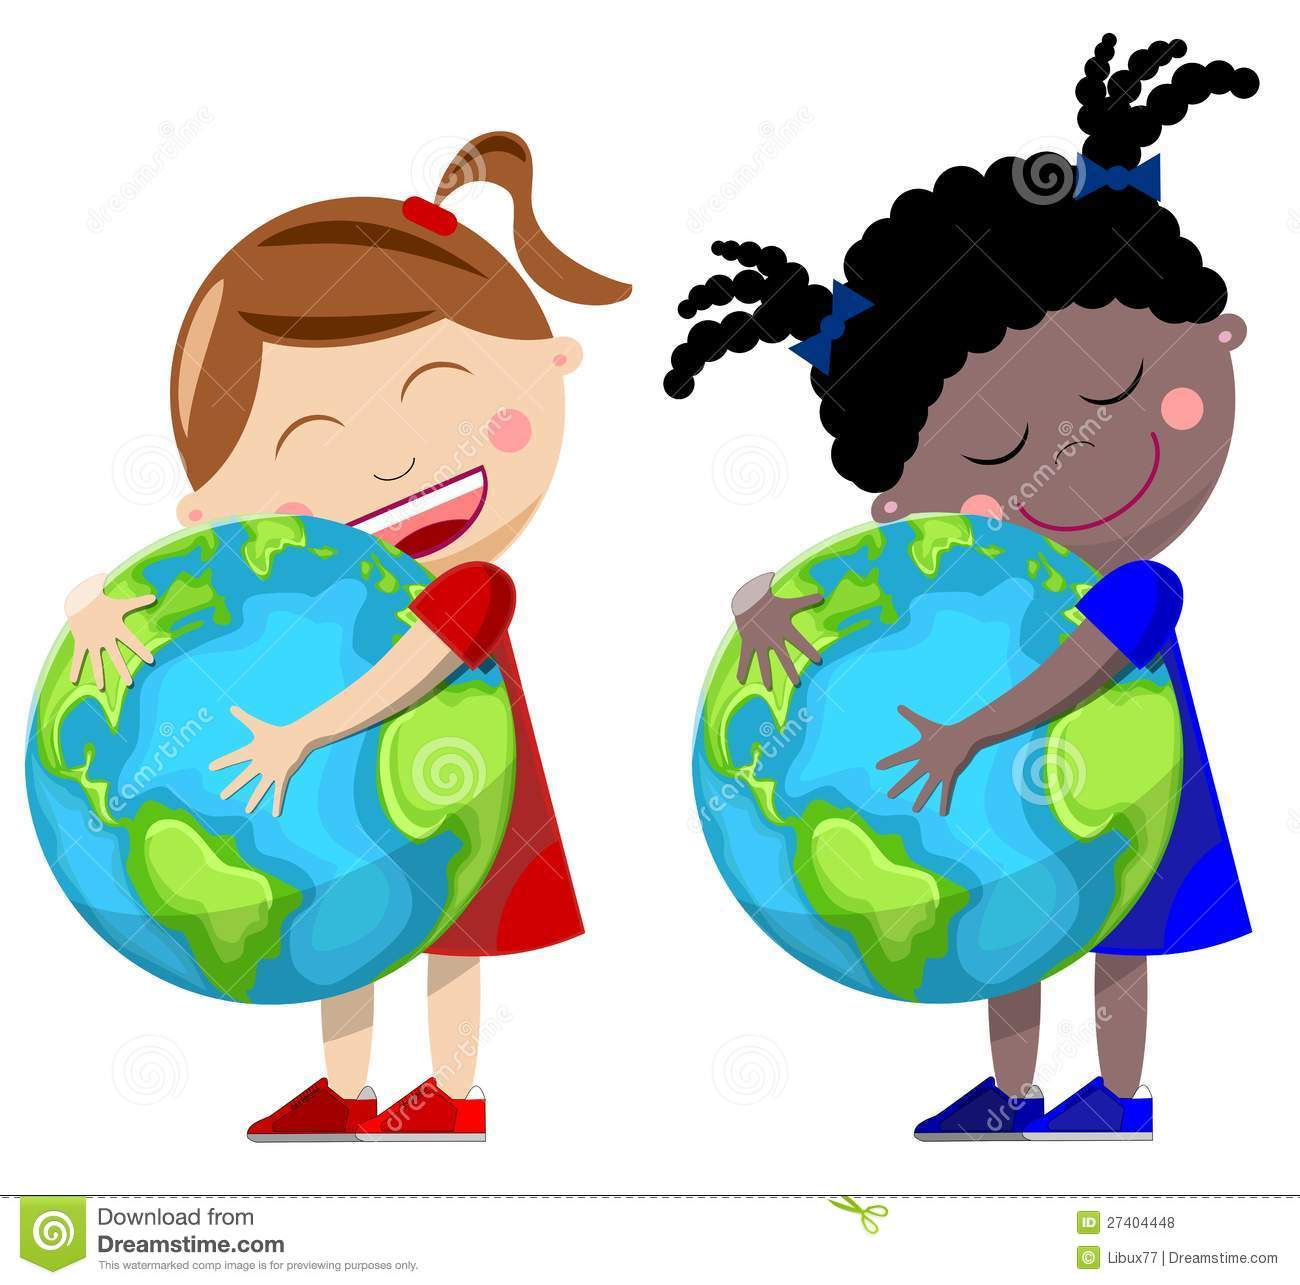 Little girls hugging the Earth isolated over white background.